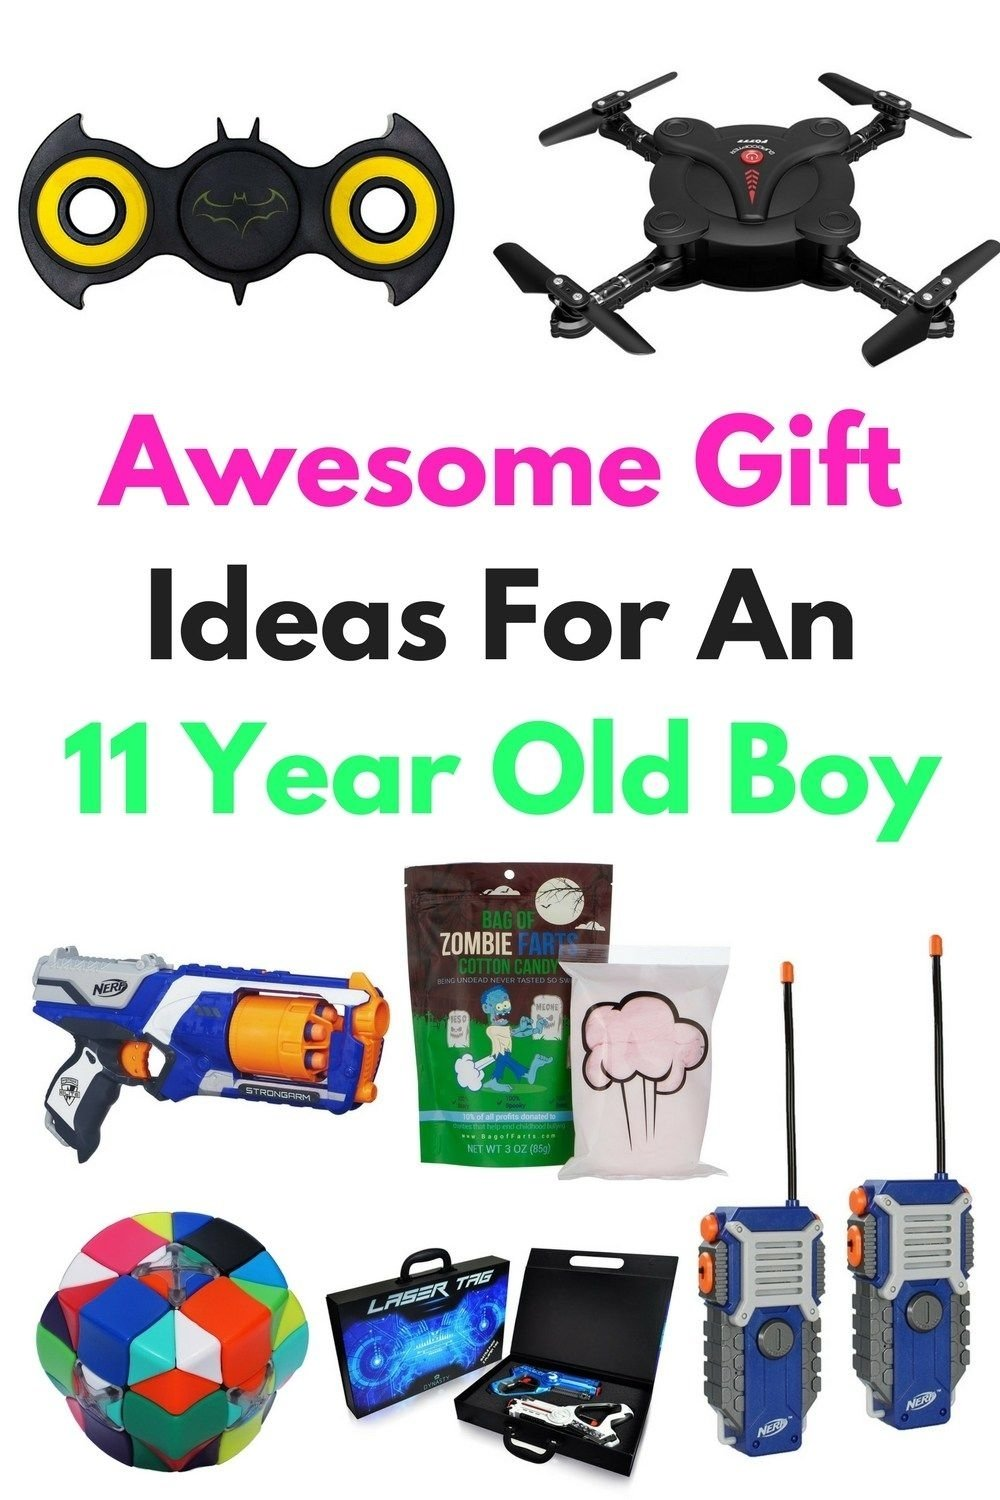 10 Most Recommended 11 Year Old Boy Birthday Gift Ideas Awesome For An